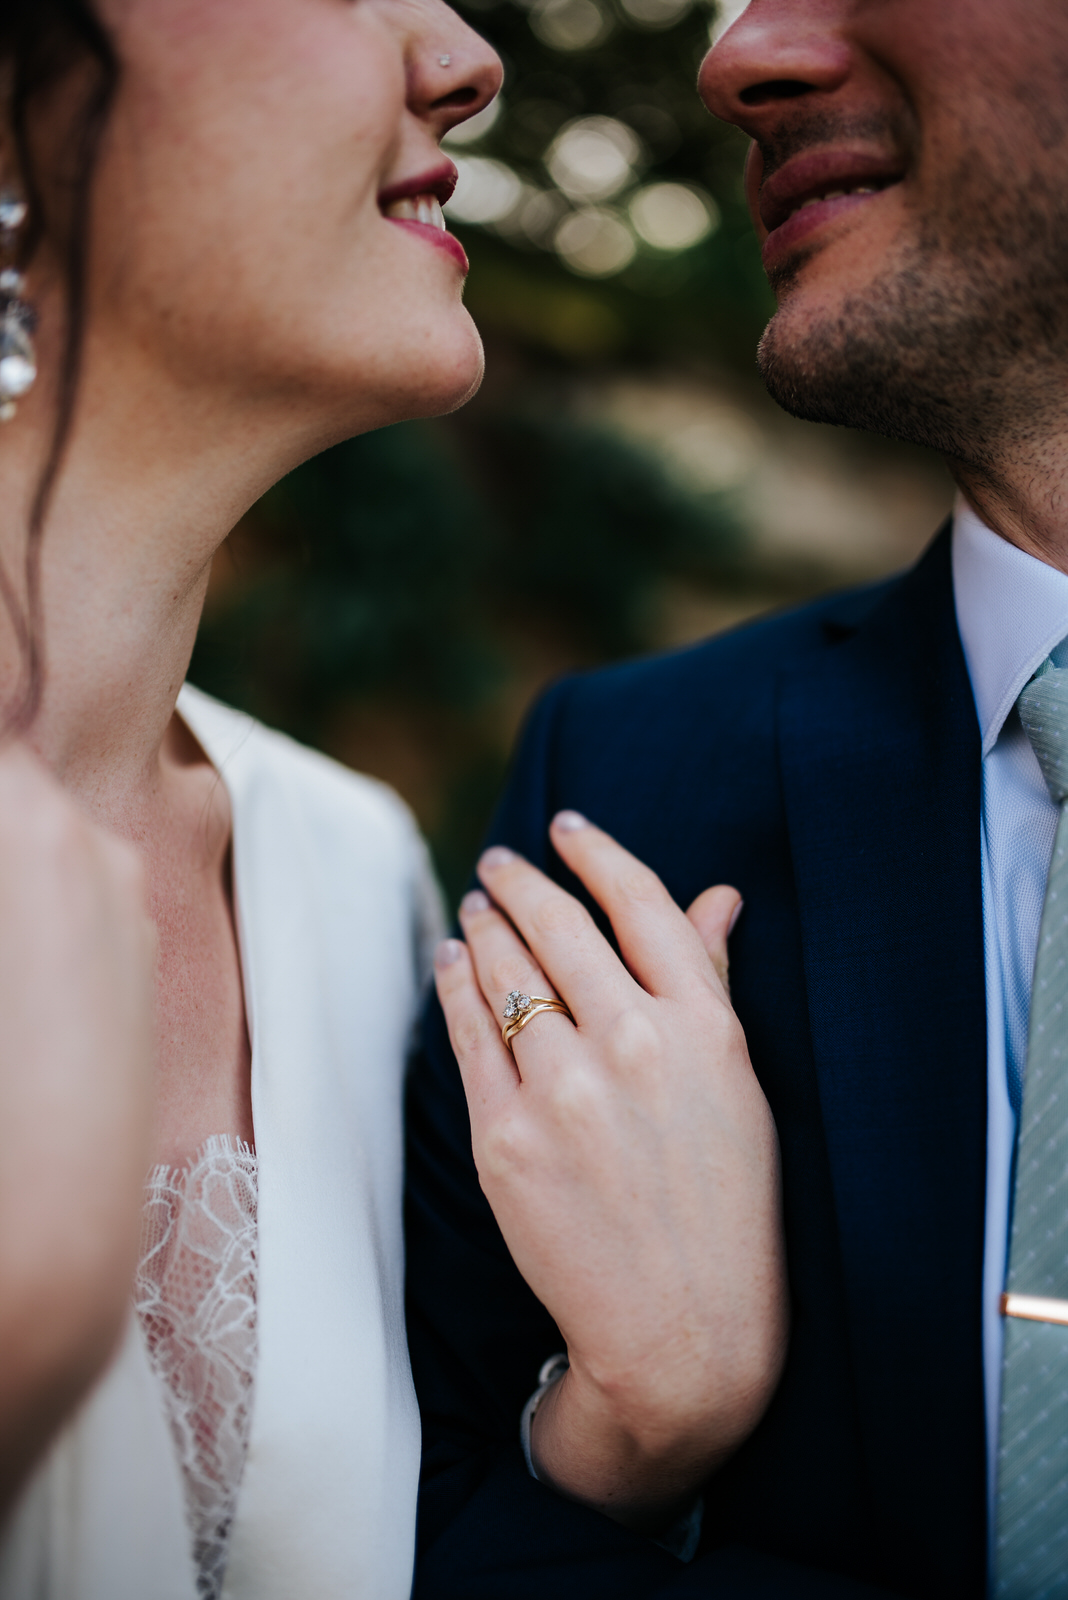 Bride shows off stunning diamond ring as she looks into groom's